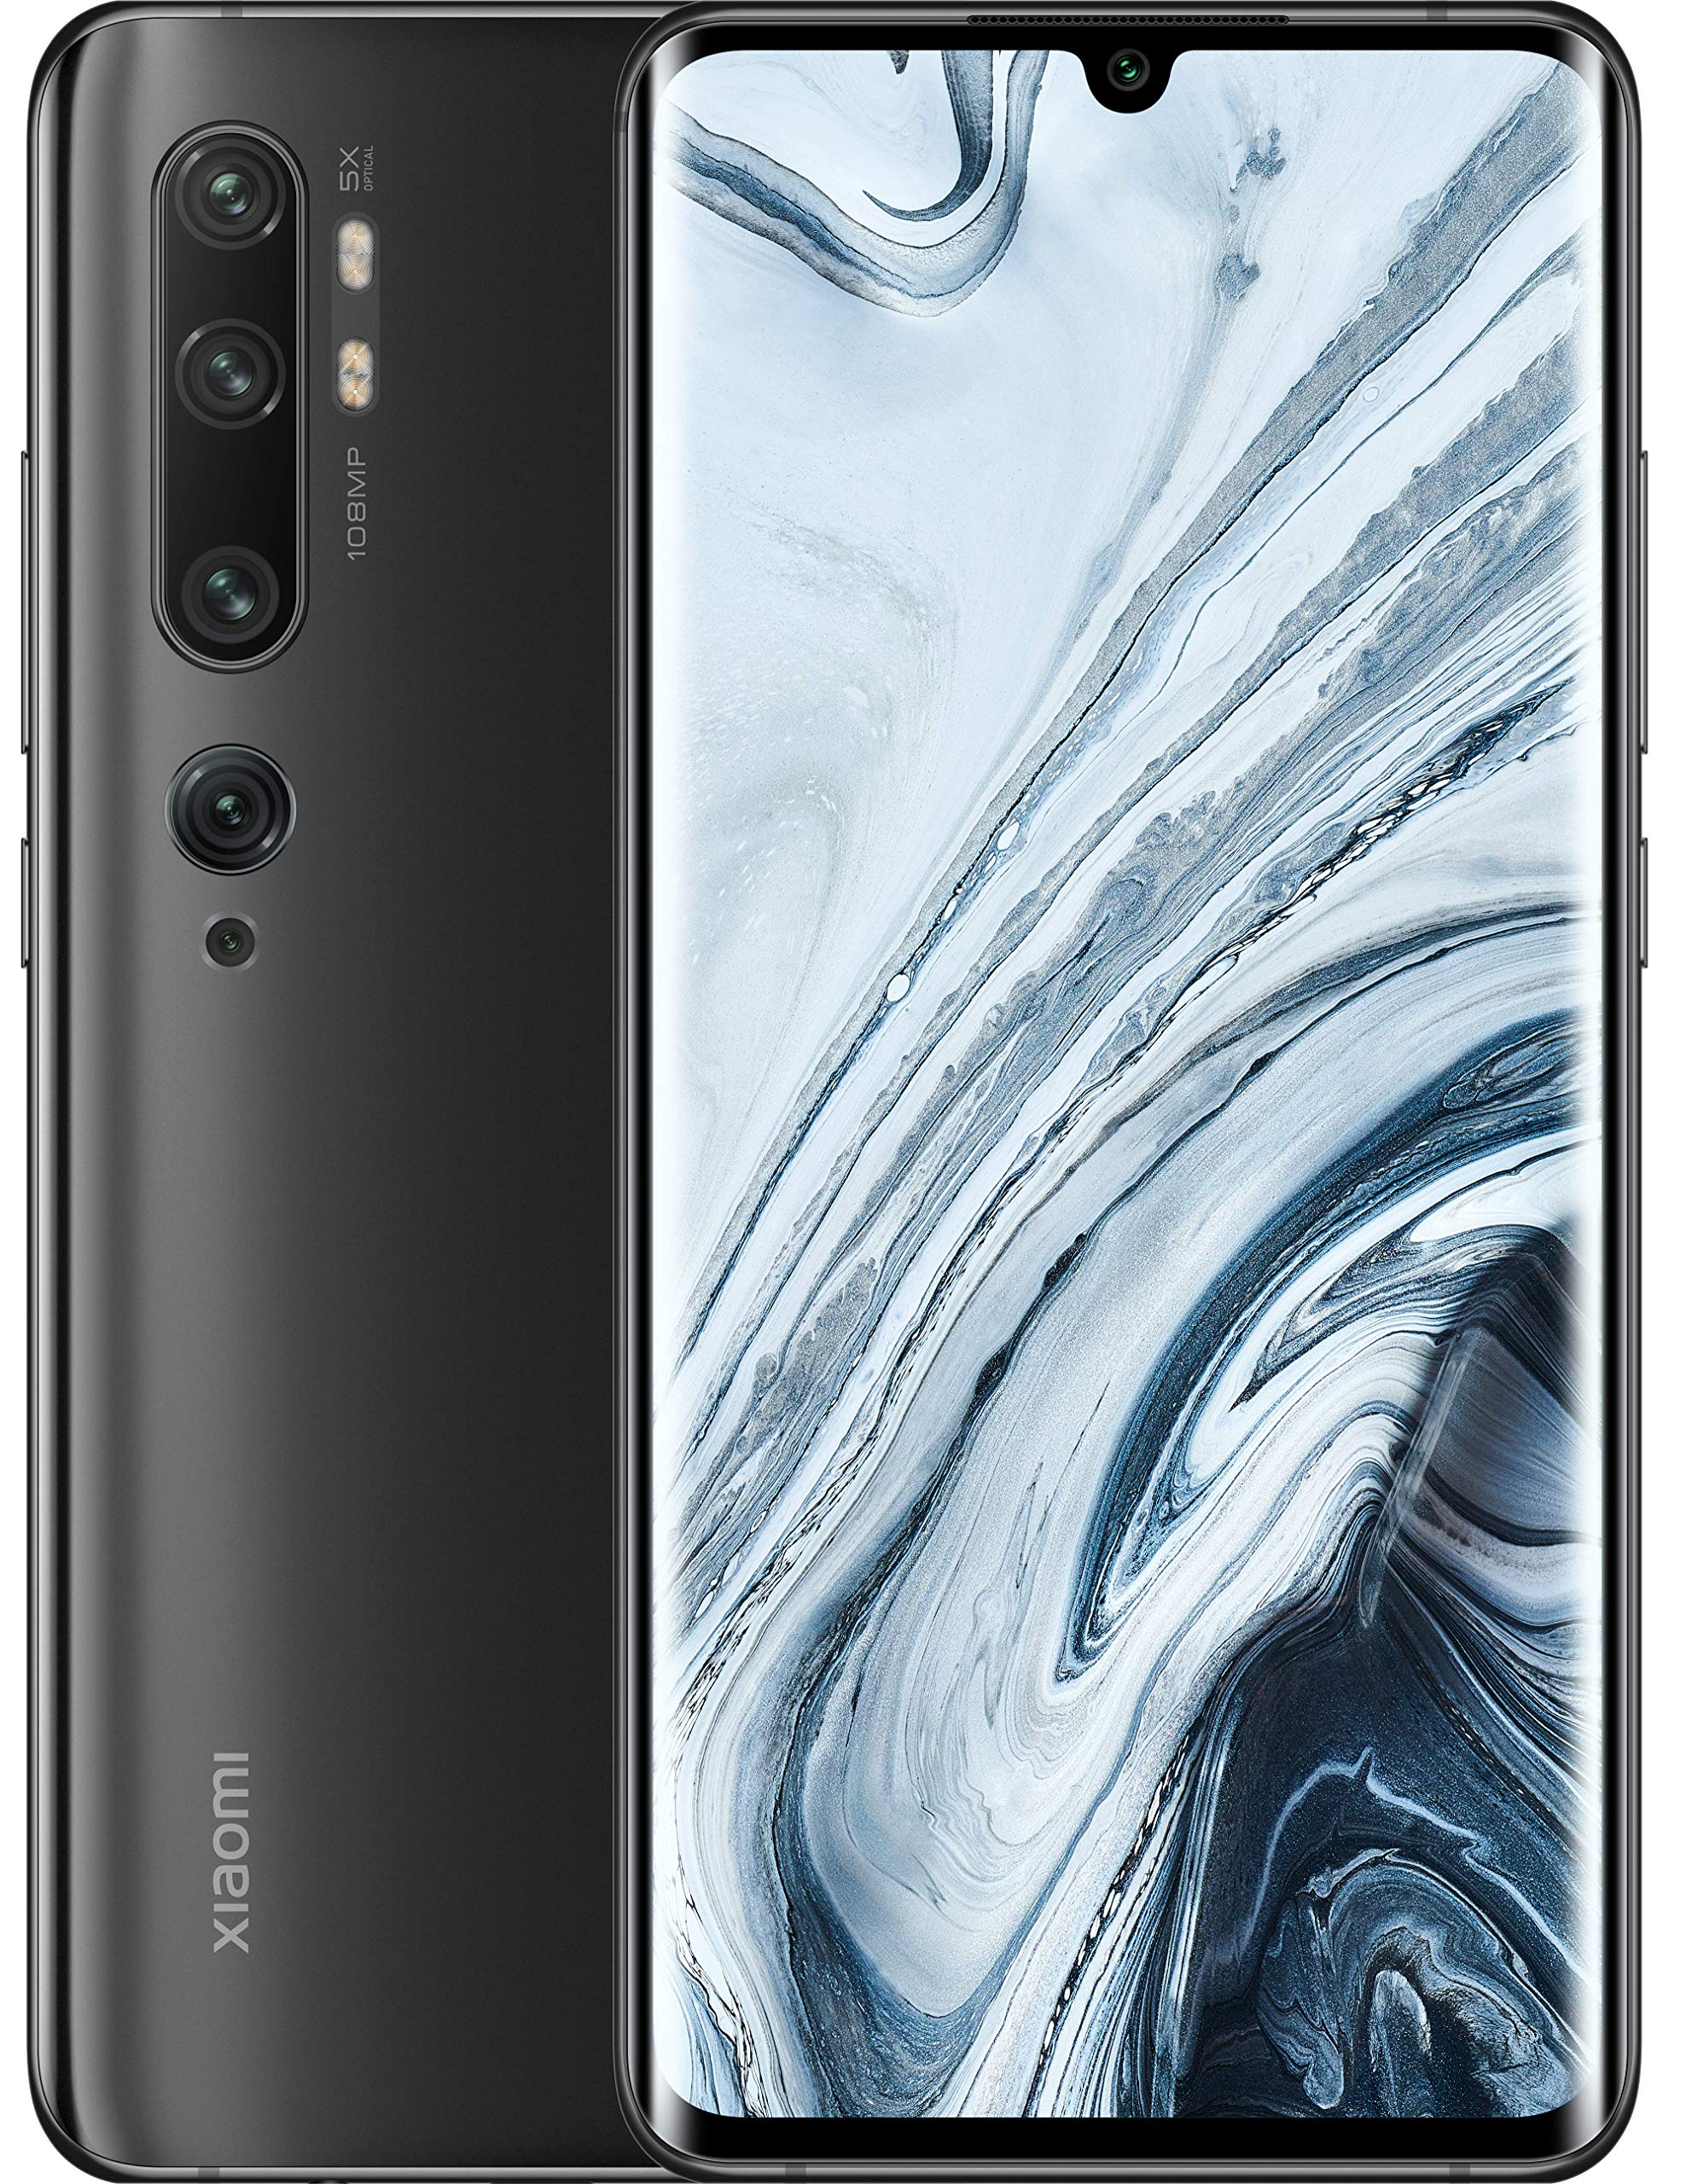 xiaomi-mi-note-10-128gb-108mp-penta-camera-647-lte-factory-unlocked-smartphone-international-version-midnight-black